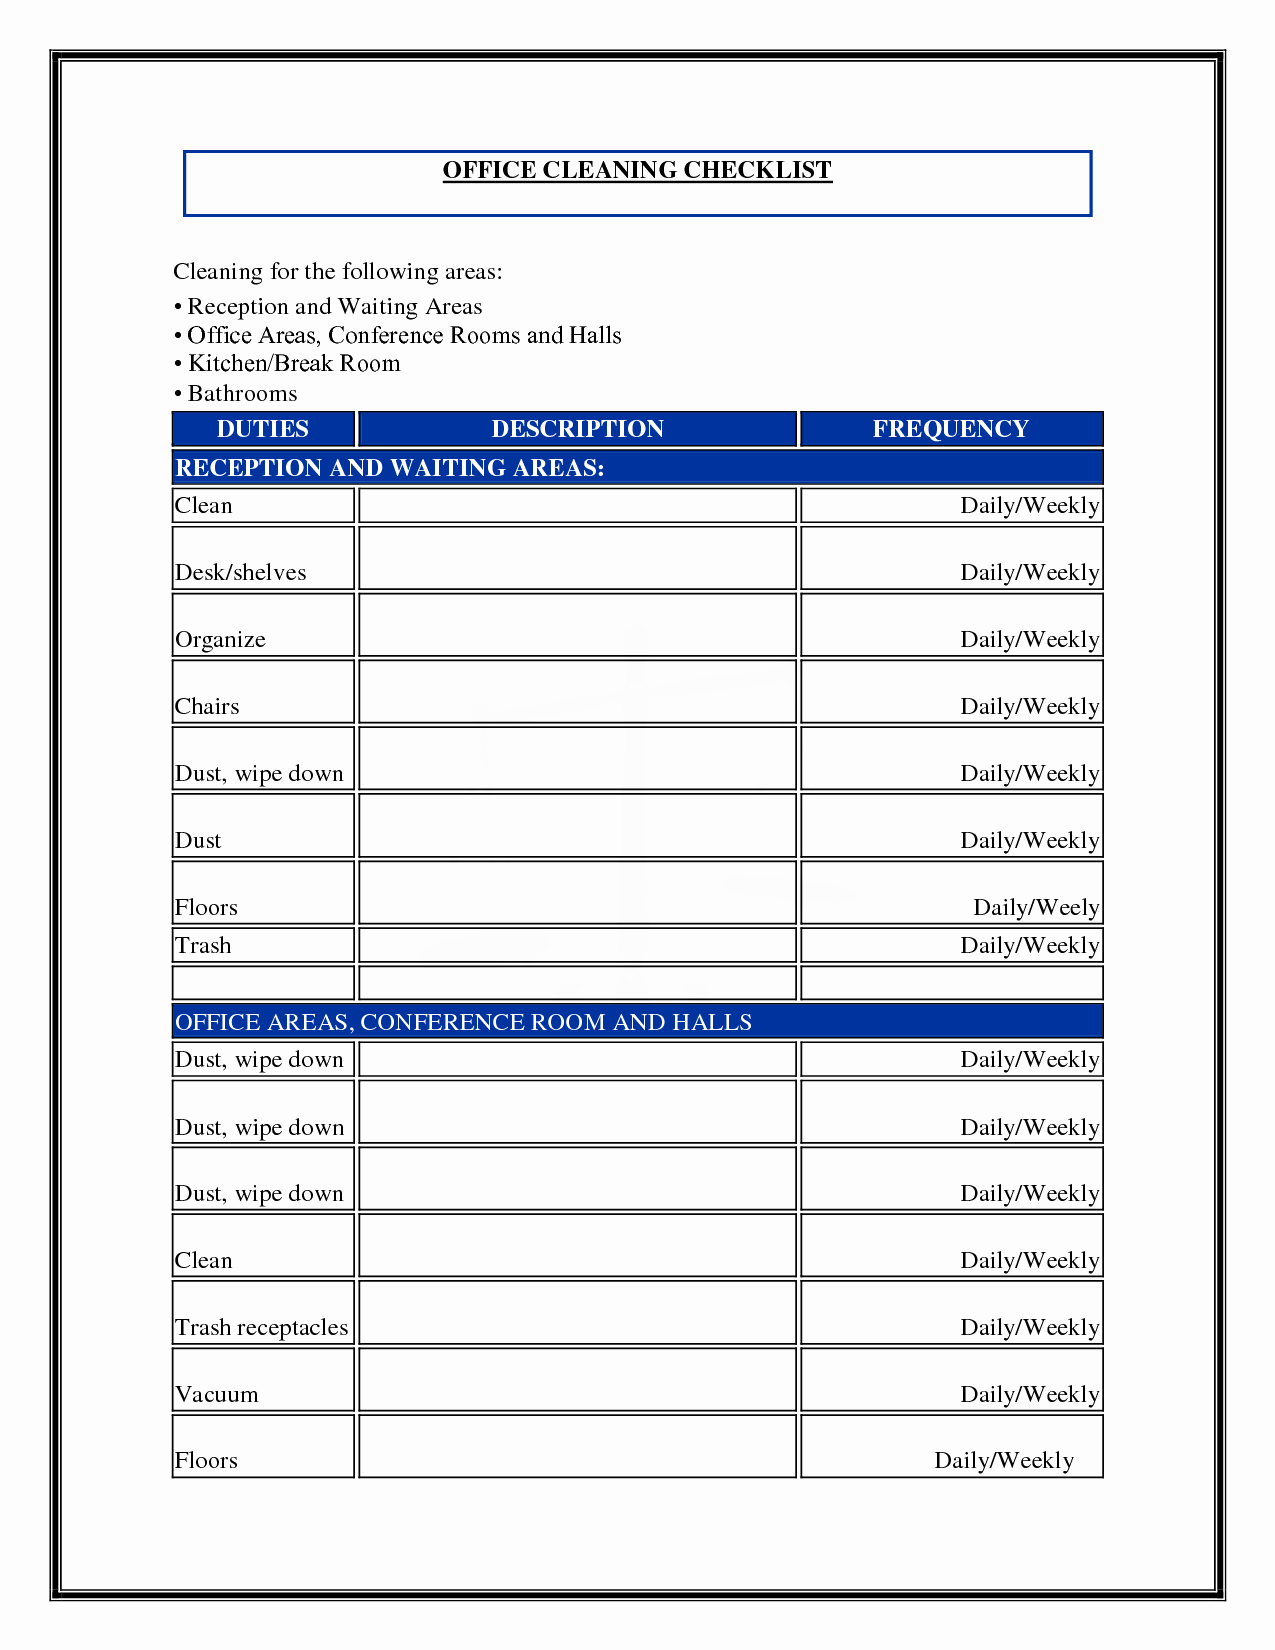 Cleaning Schedule Template for Home Inspirational Daily Fice Cleaning Checklist and Schedule Template